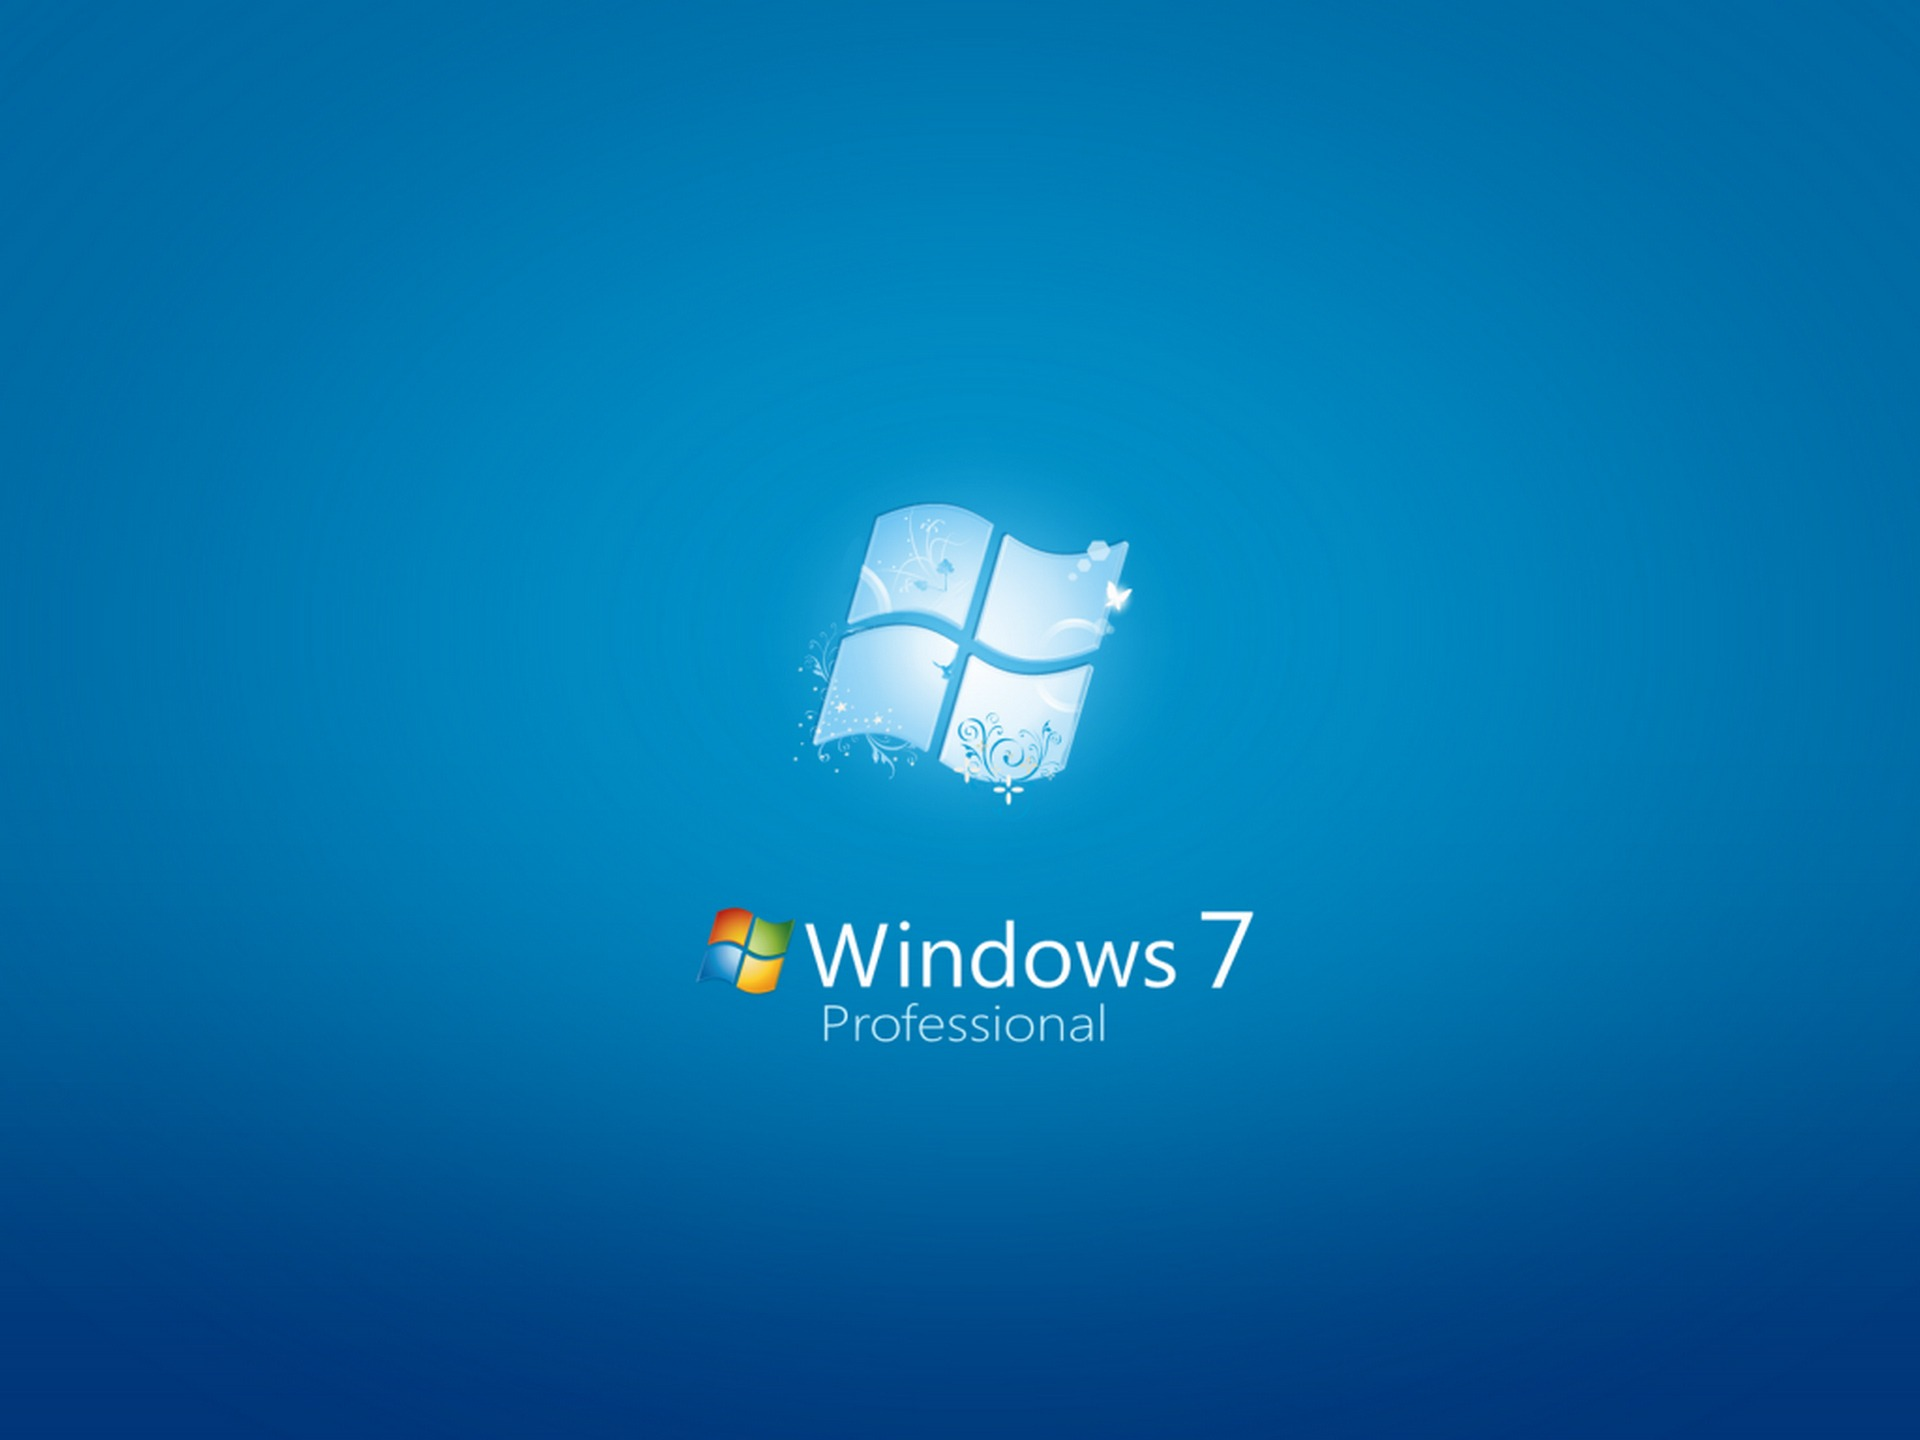 Windows 7 professional wallpaper windows seven computers for Window 7 professional